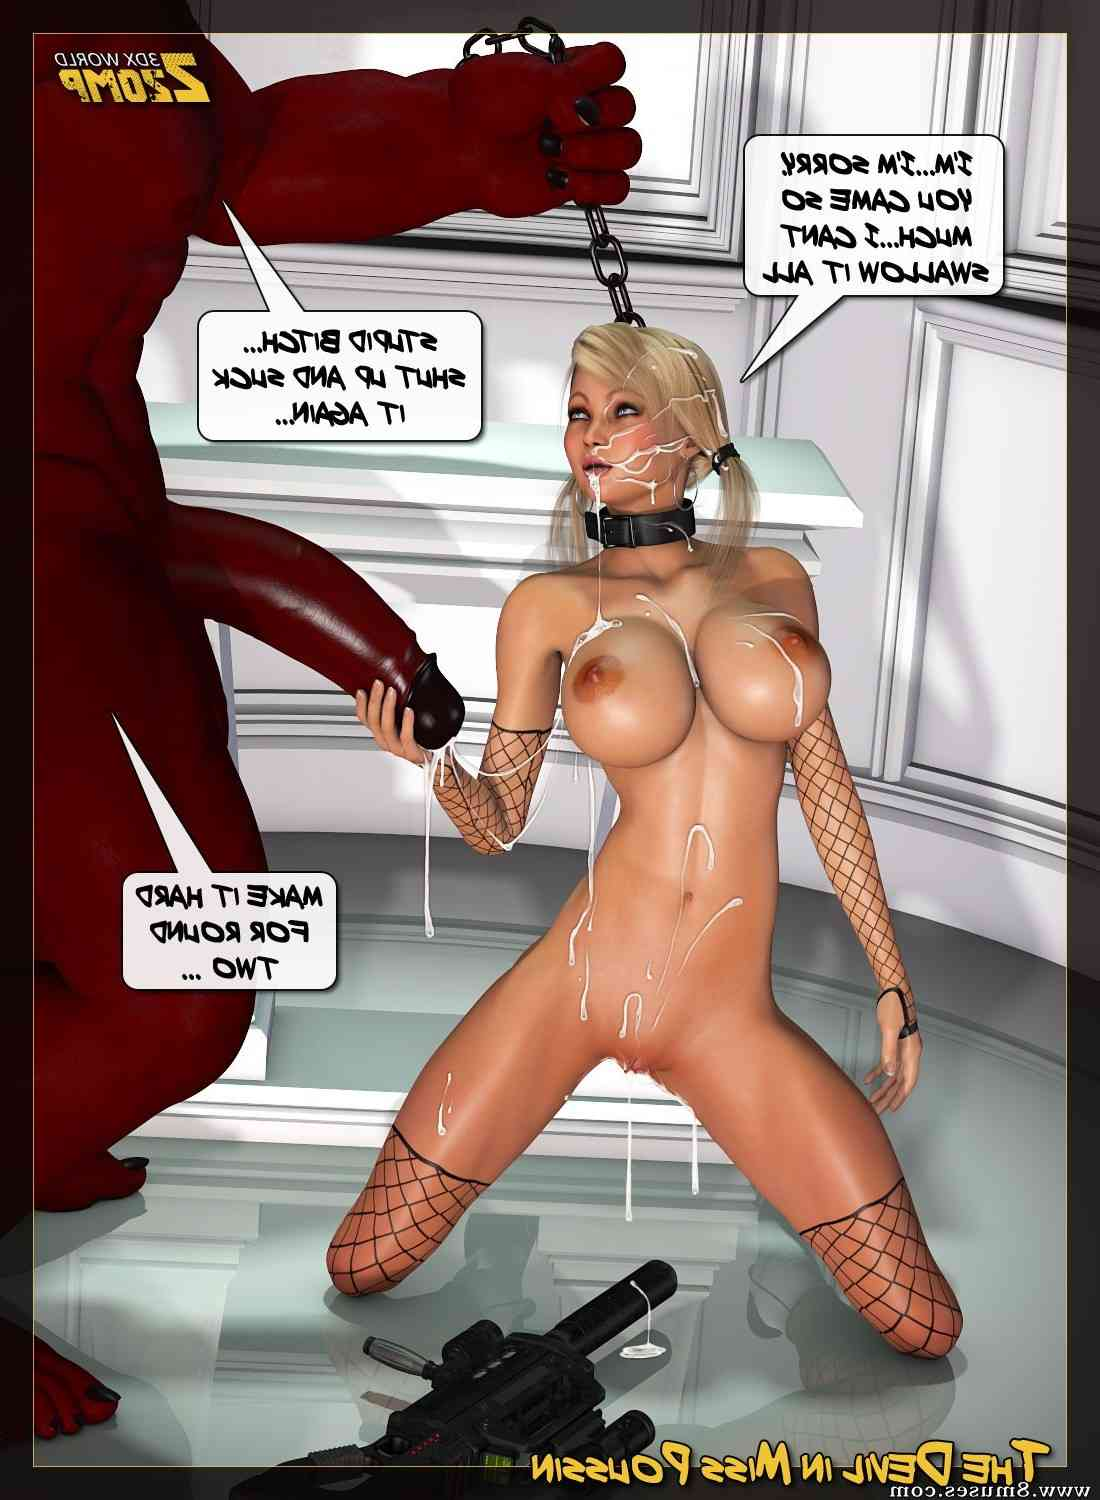 ZZomp-Comics/The-Devil-in-Miss-Pousin The_Devil_in_Miss_Pousin__8muses_-_Sex_and_Porn_Comics_23.jpg